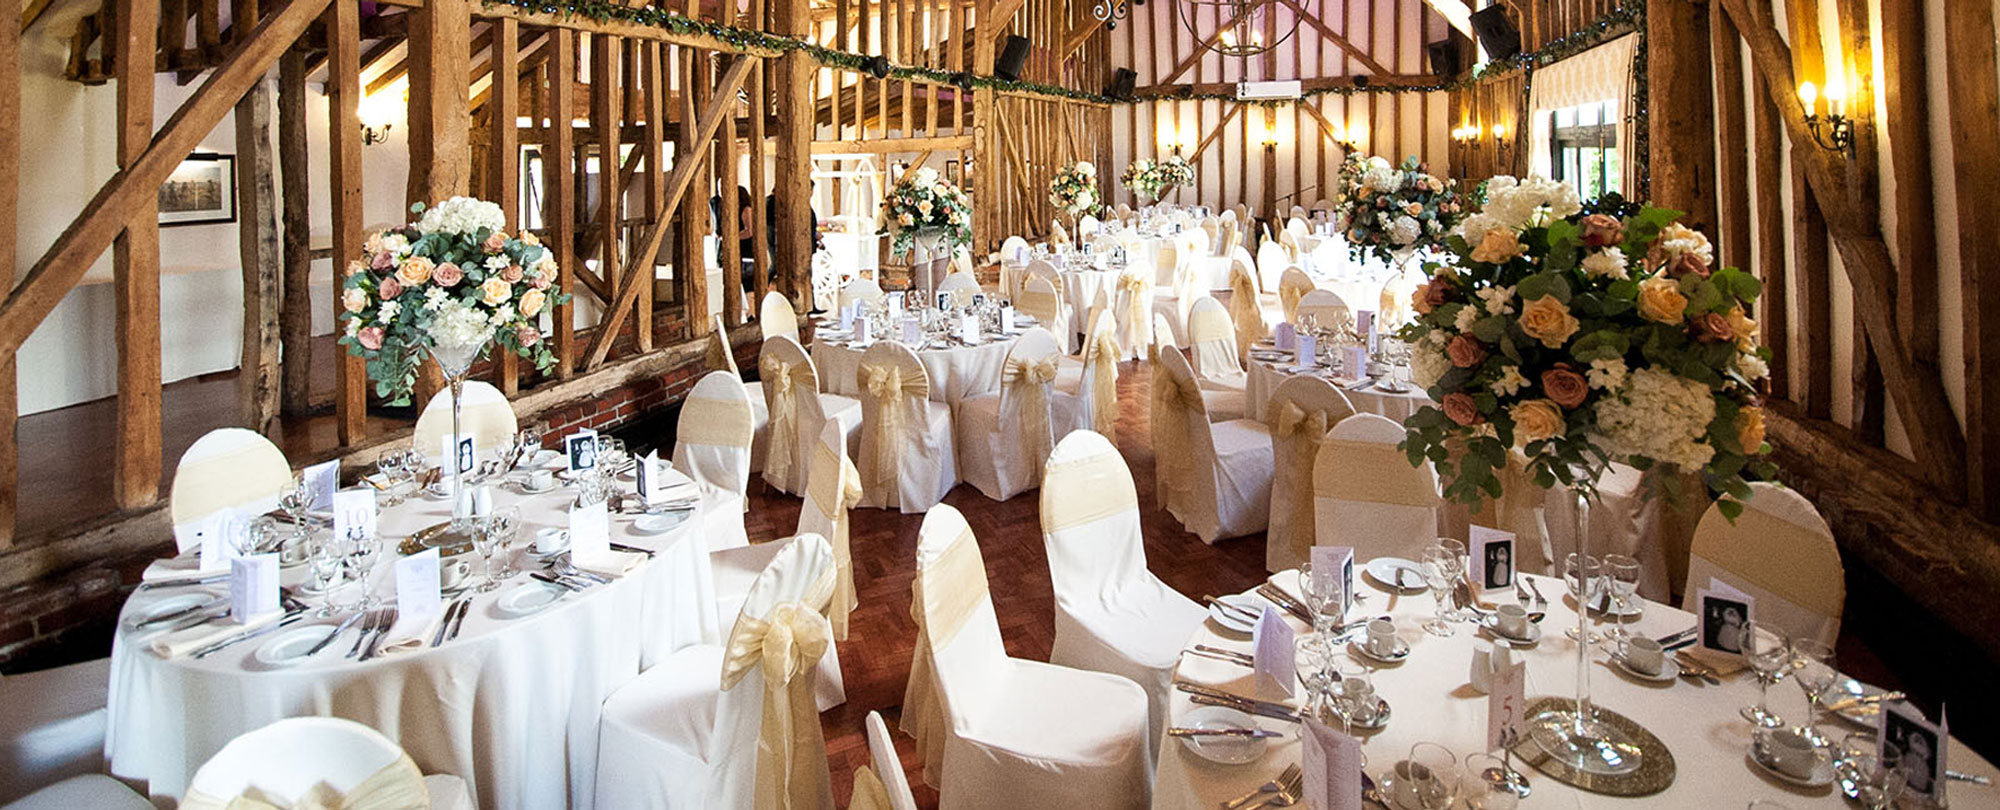 Planning Your Wedding Seating And Top Table Crondon Park